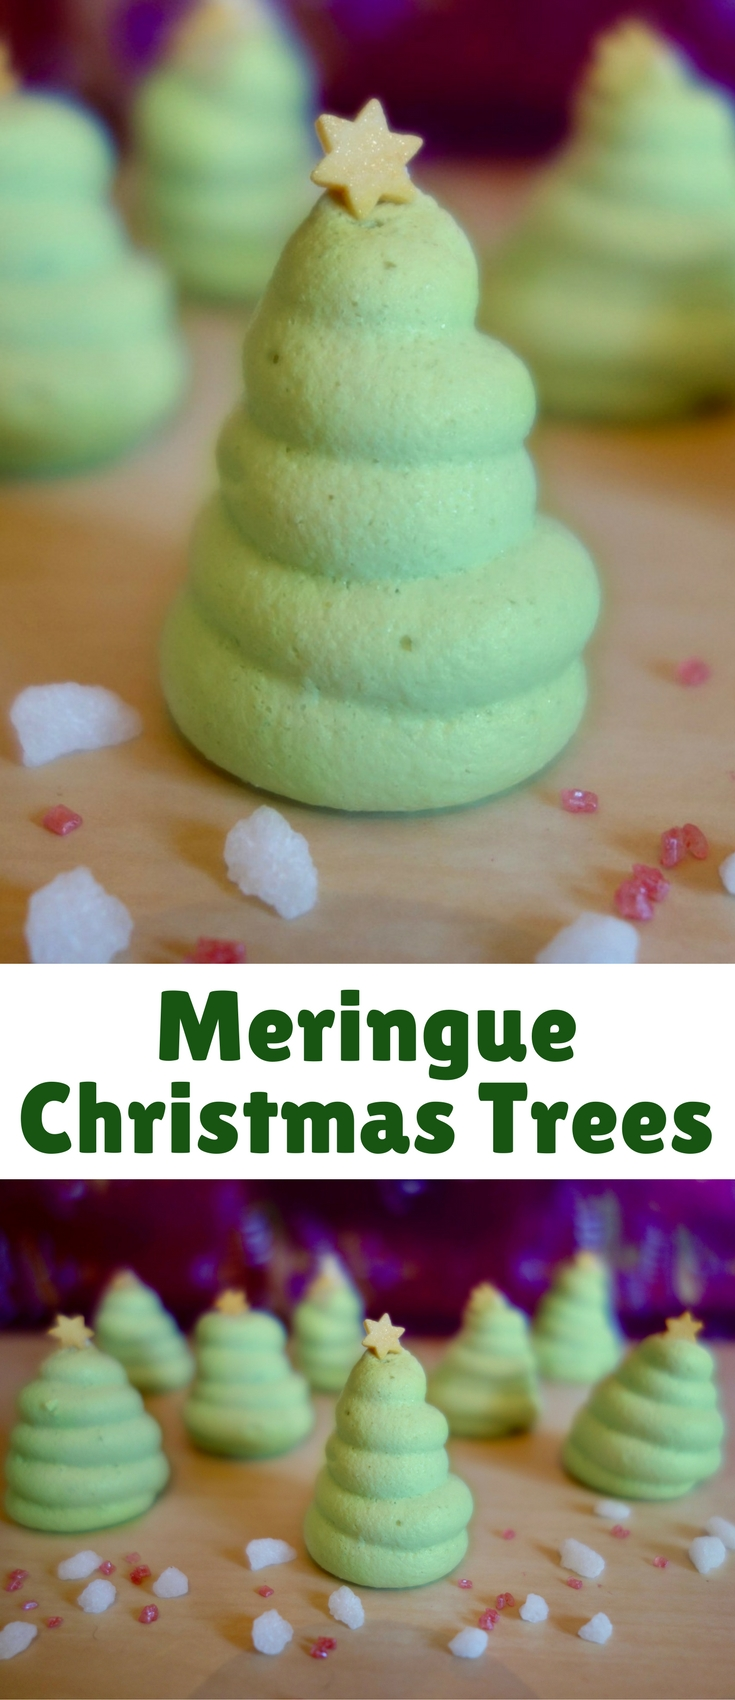 These little meringue Christmas trees are great for a Christmas party or to give as favours.